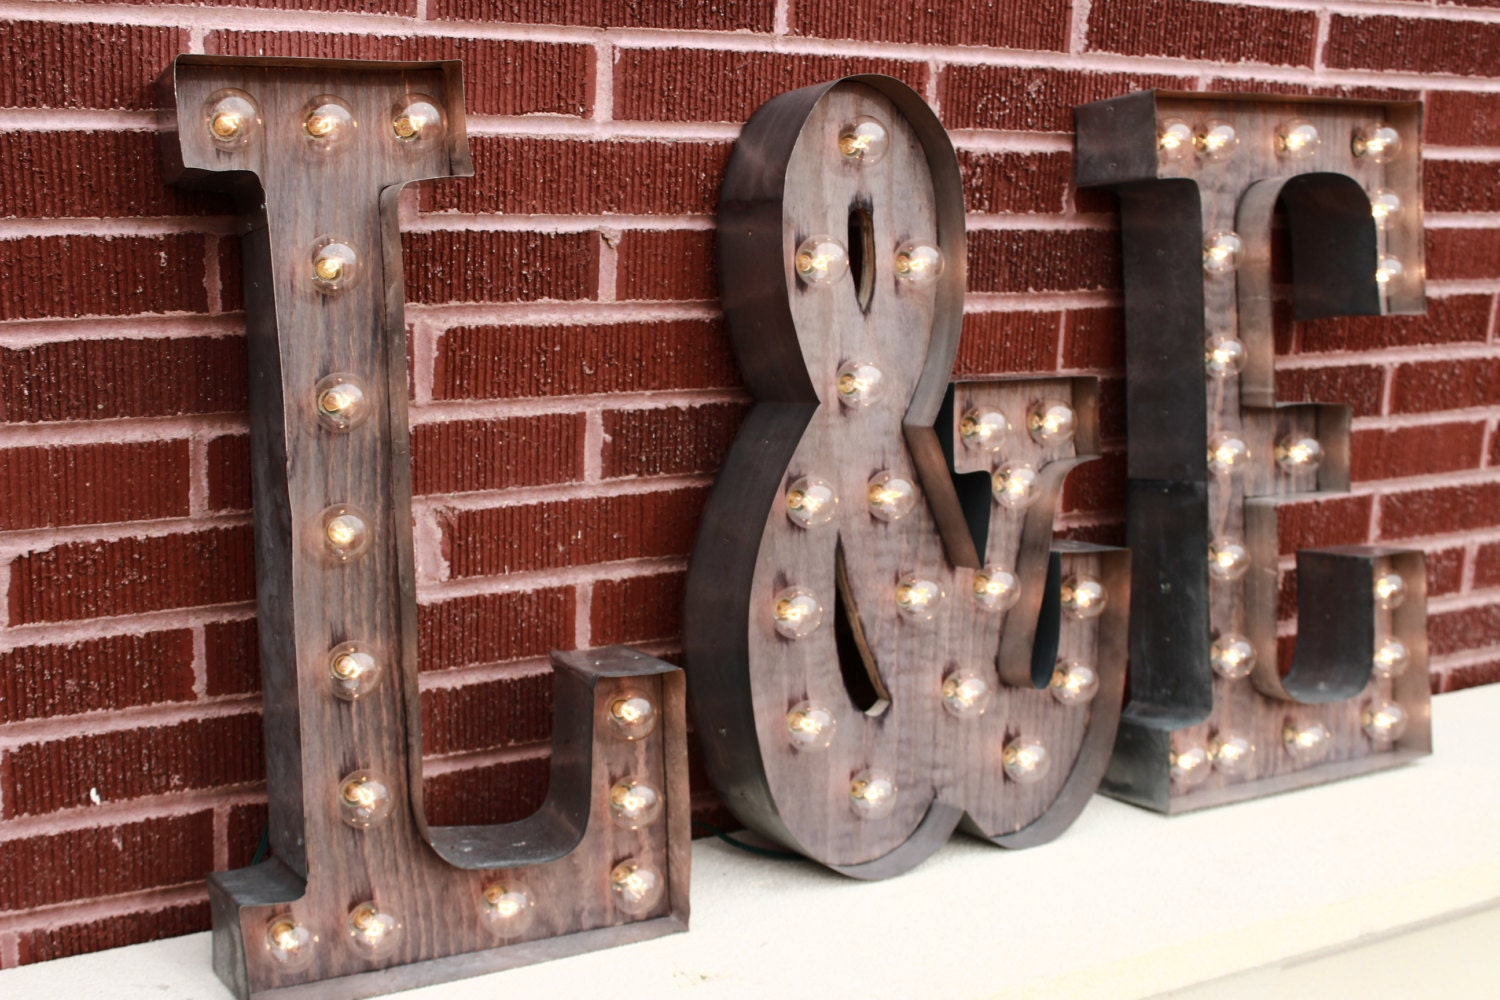 3 Custom Light Up Letters 2 Initials w/ Ampersand & sign for:🔎zoom,Lighting